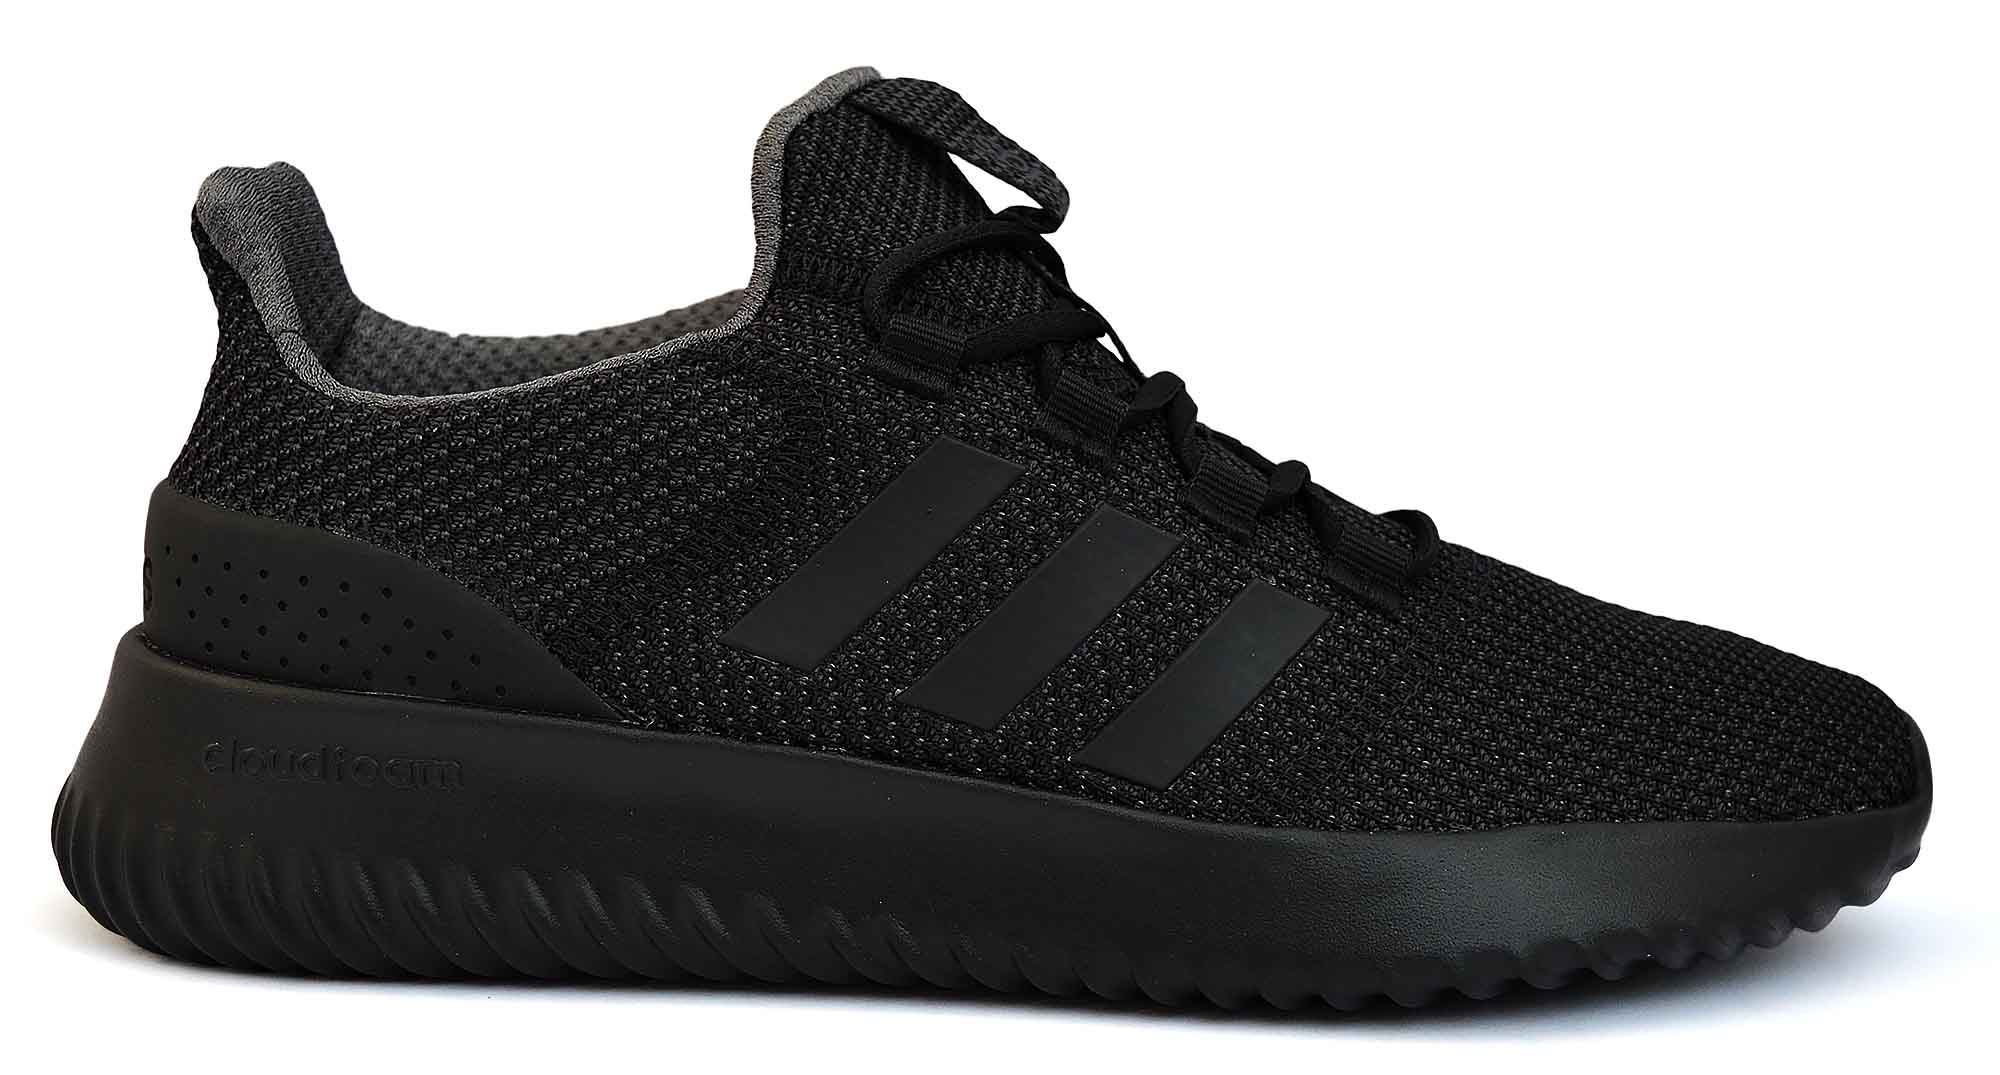 Adidas Cloudfoam Ultimate BC0018 r. 46 23 W wa 7199900971